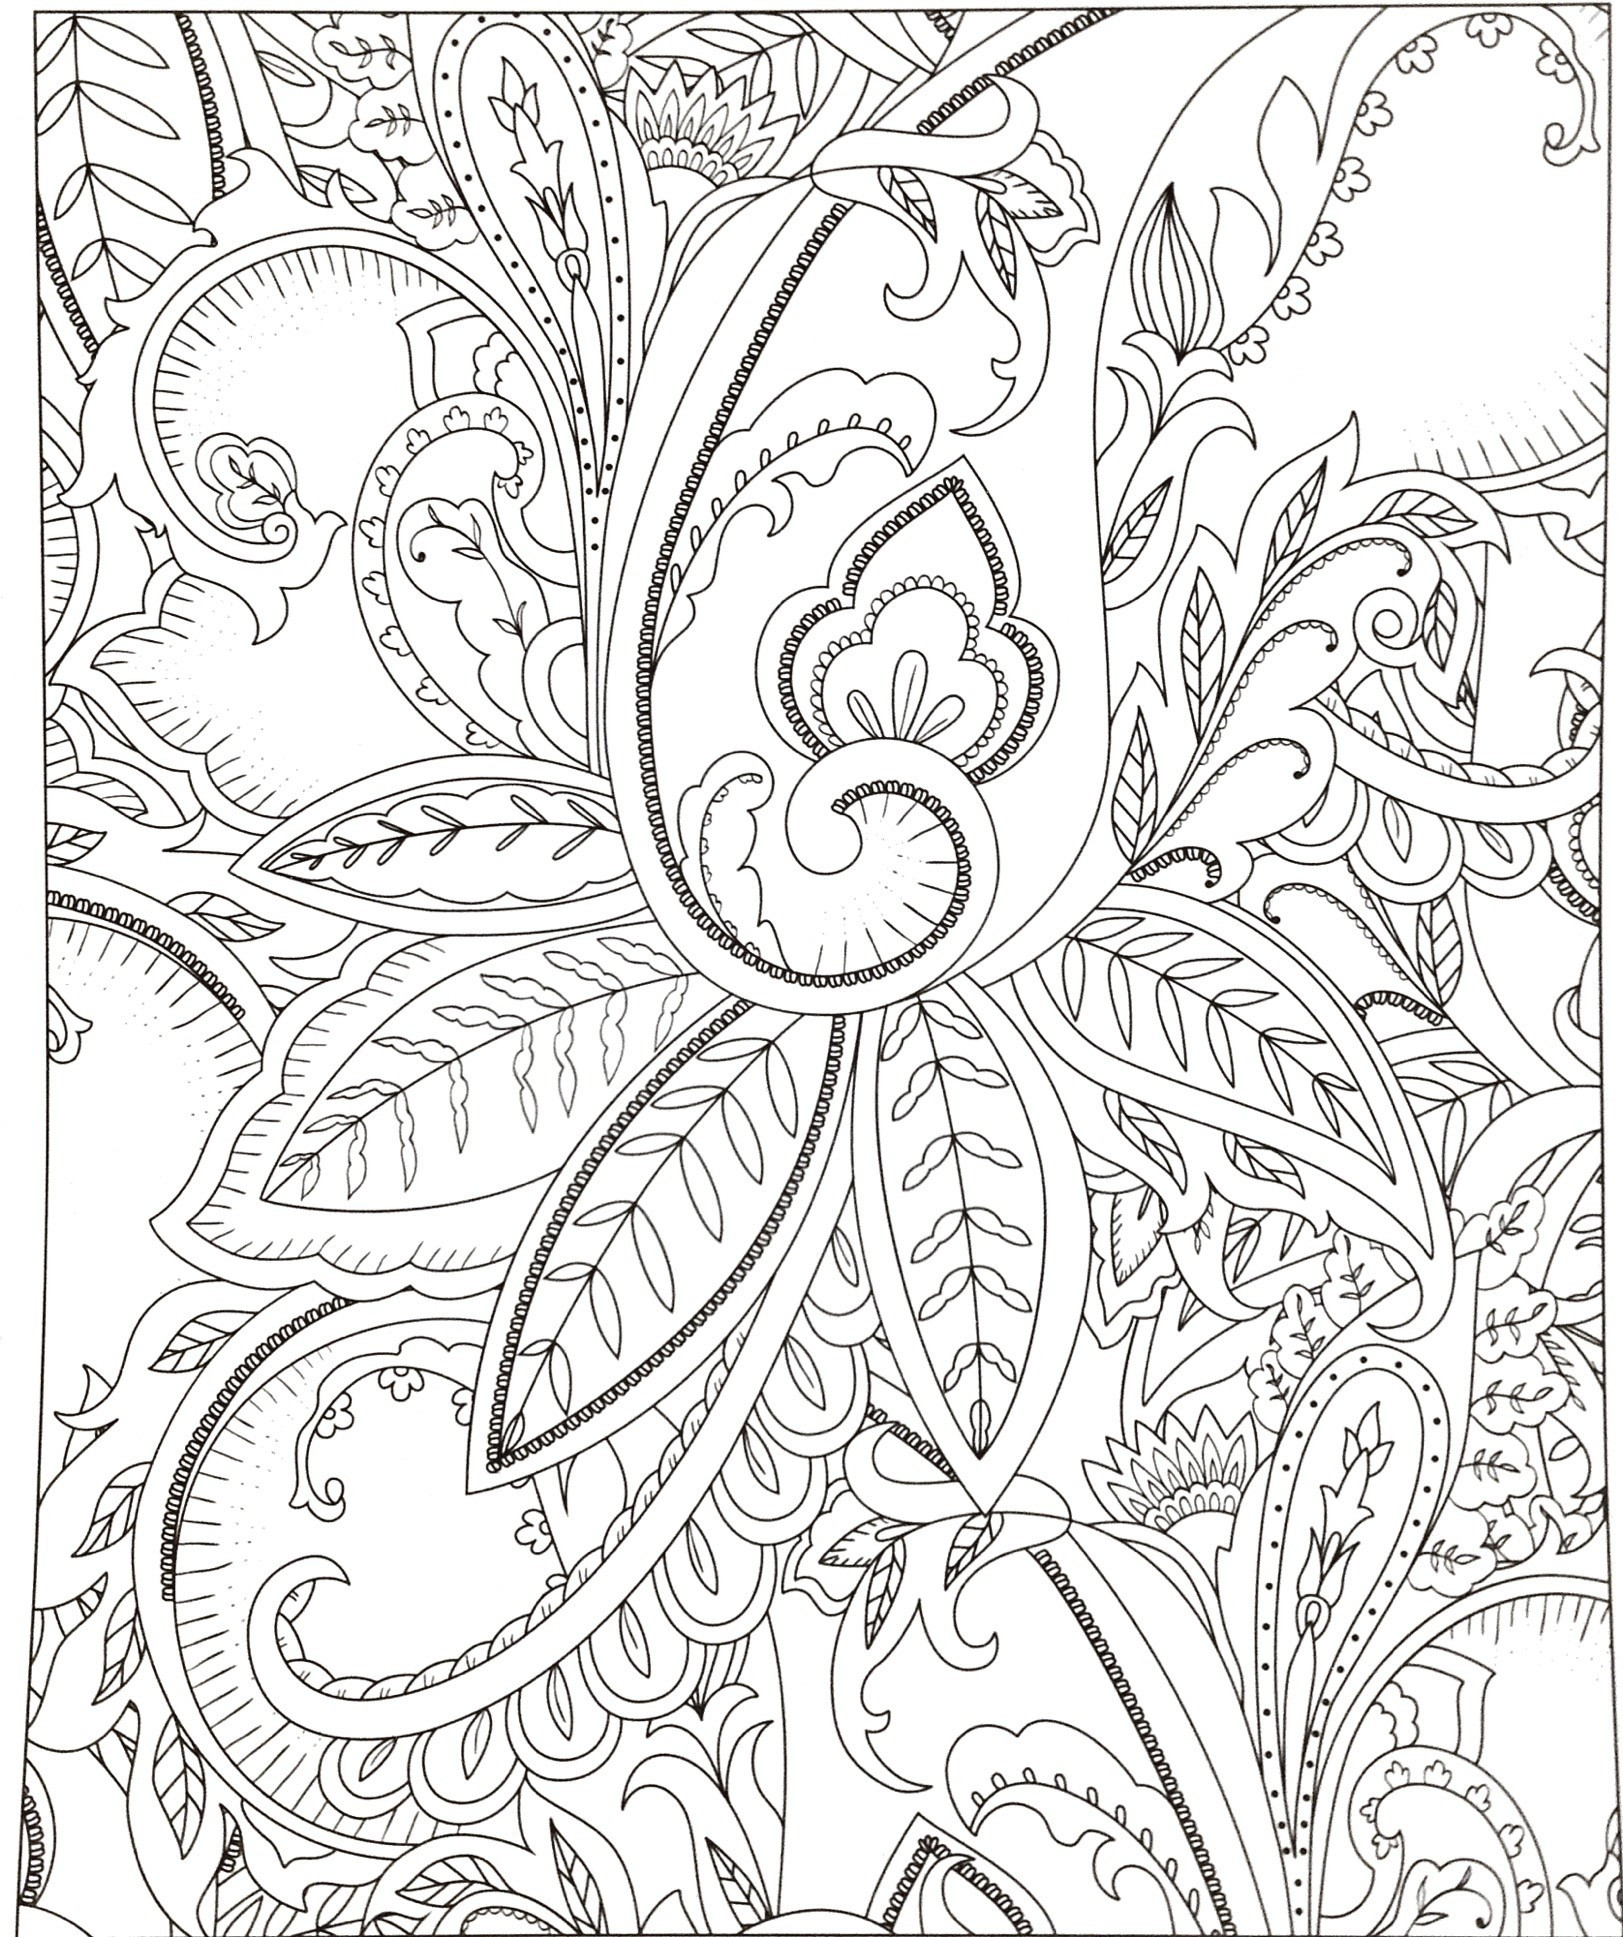 Vase with Hearts Of Cool Vases Flower Vase Coloring Page Pages Flowers In A top I 0d Ruva In Cool Vases Flower Vase Coloring Page Pages Flowers In A top I 0d